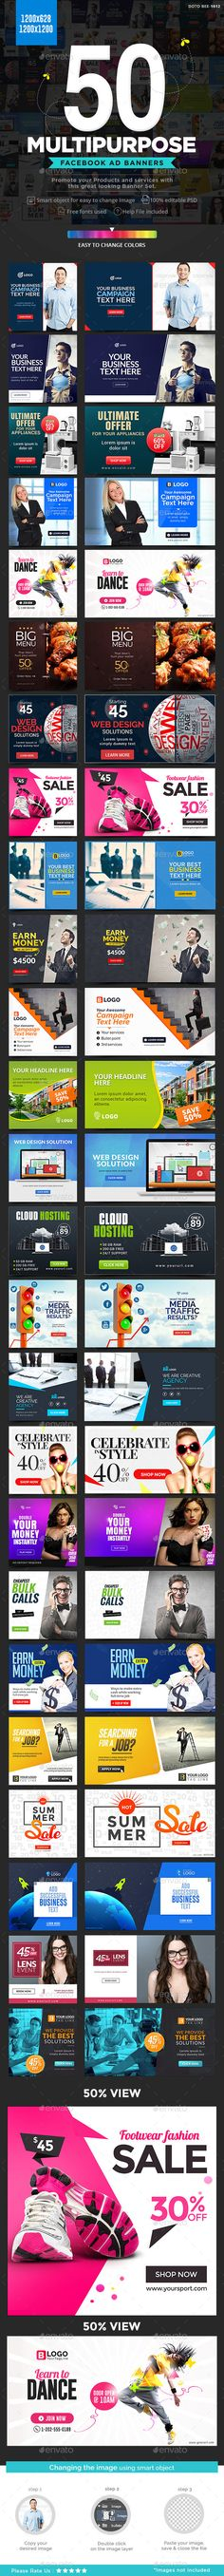 Facebook AD Banners - 25 Designs - 2 Sizes Each